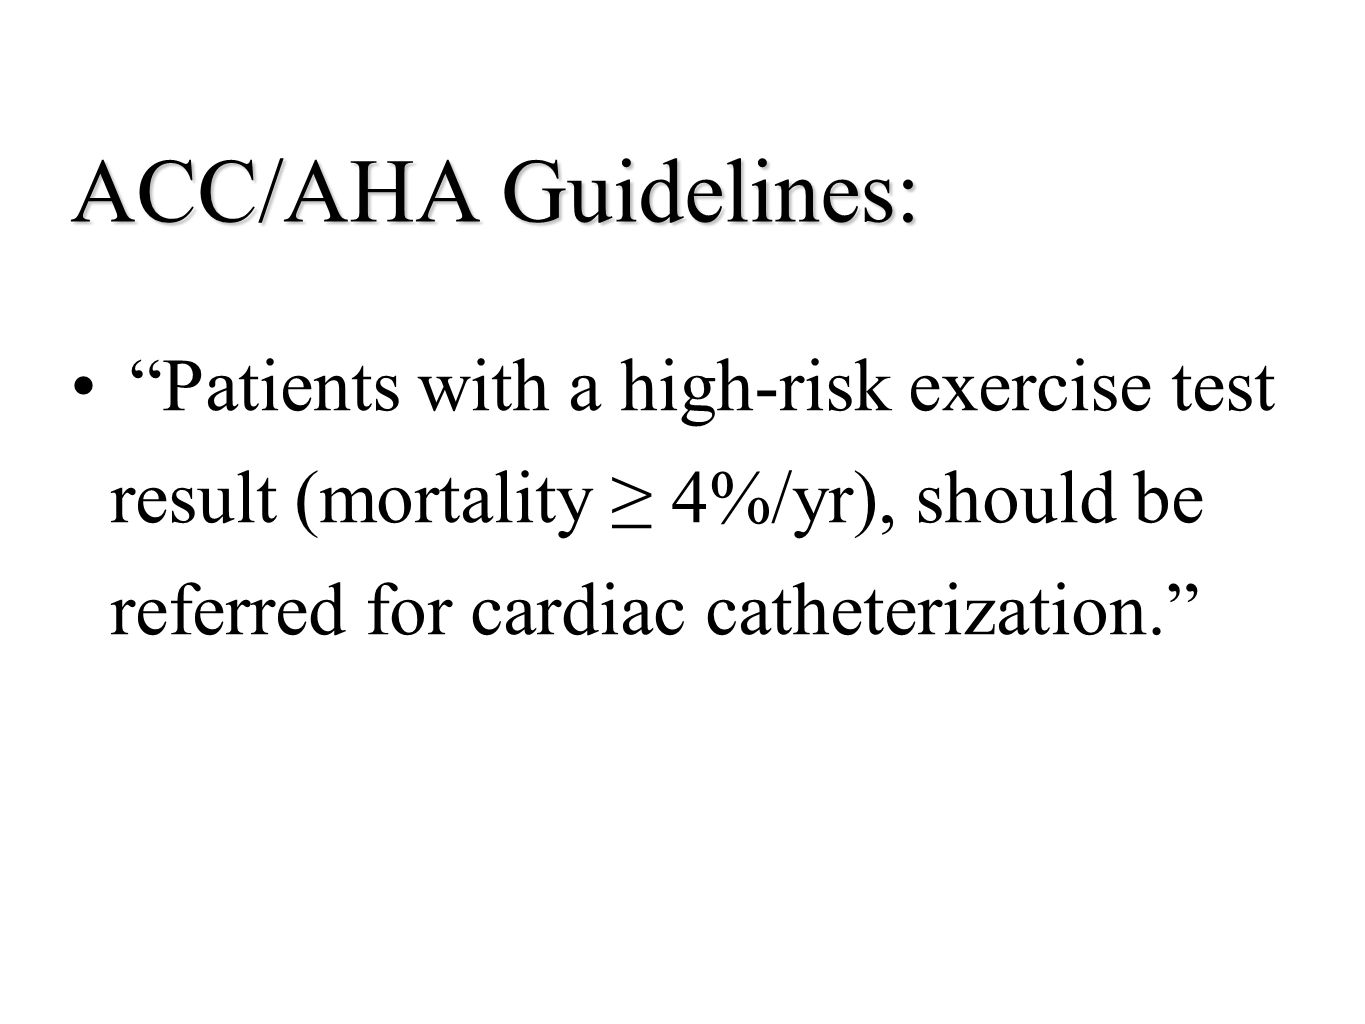 ACC/AHA Guidelines: Patients with a high-risk exercise test result (mortality ≥ 4%/yr), should be referred for cardiac catheterization.